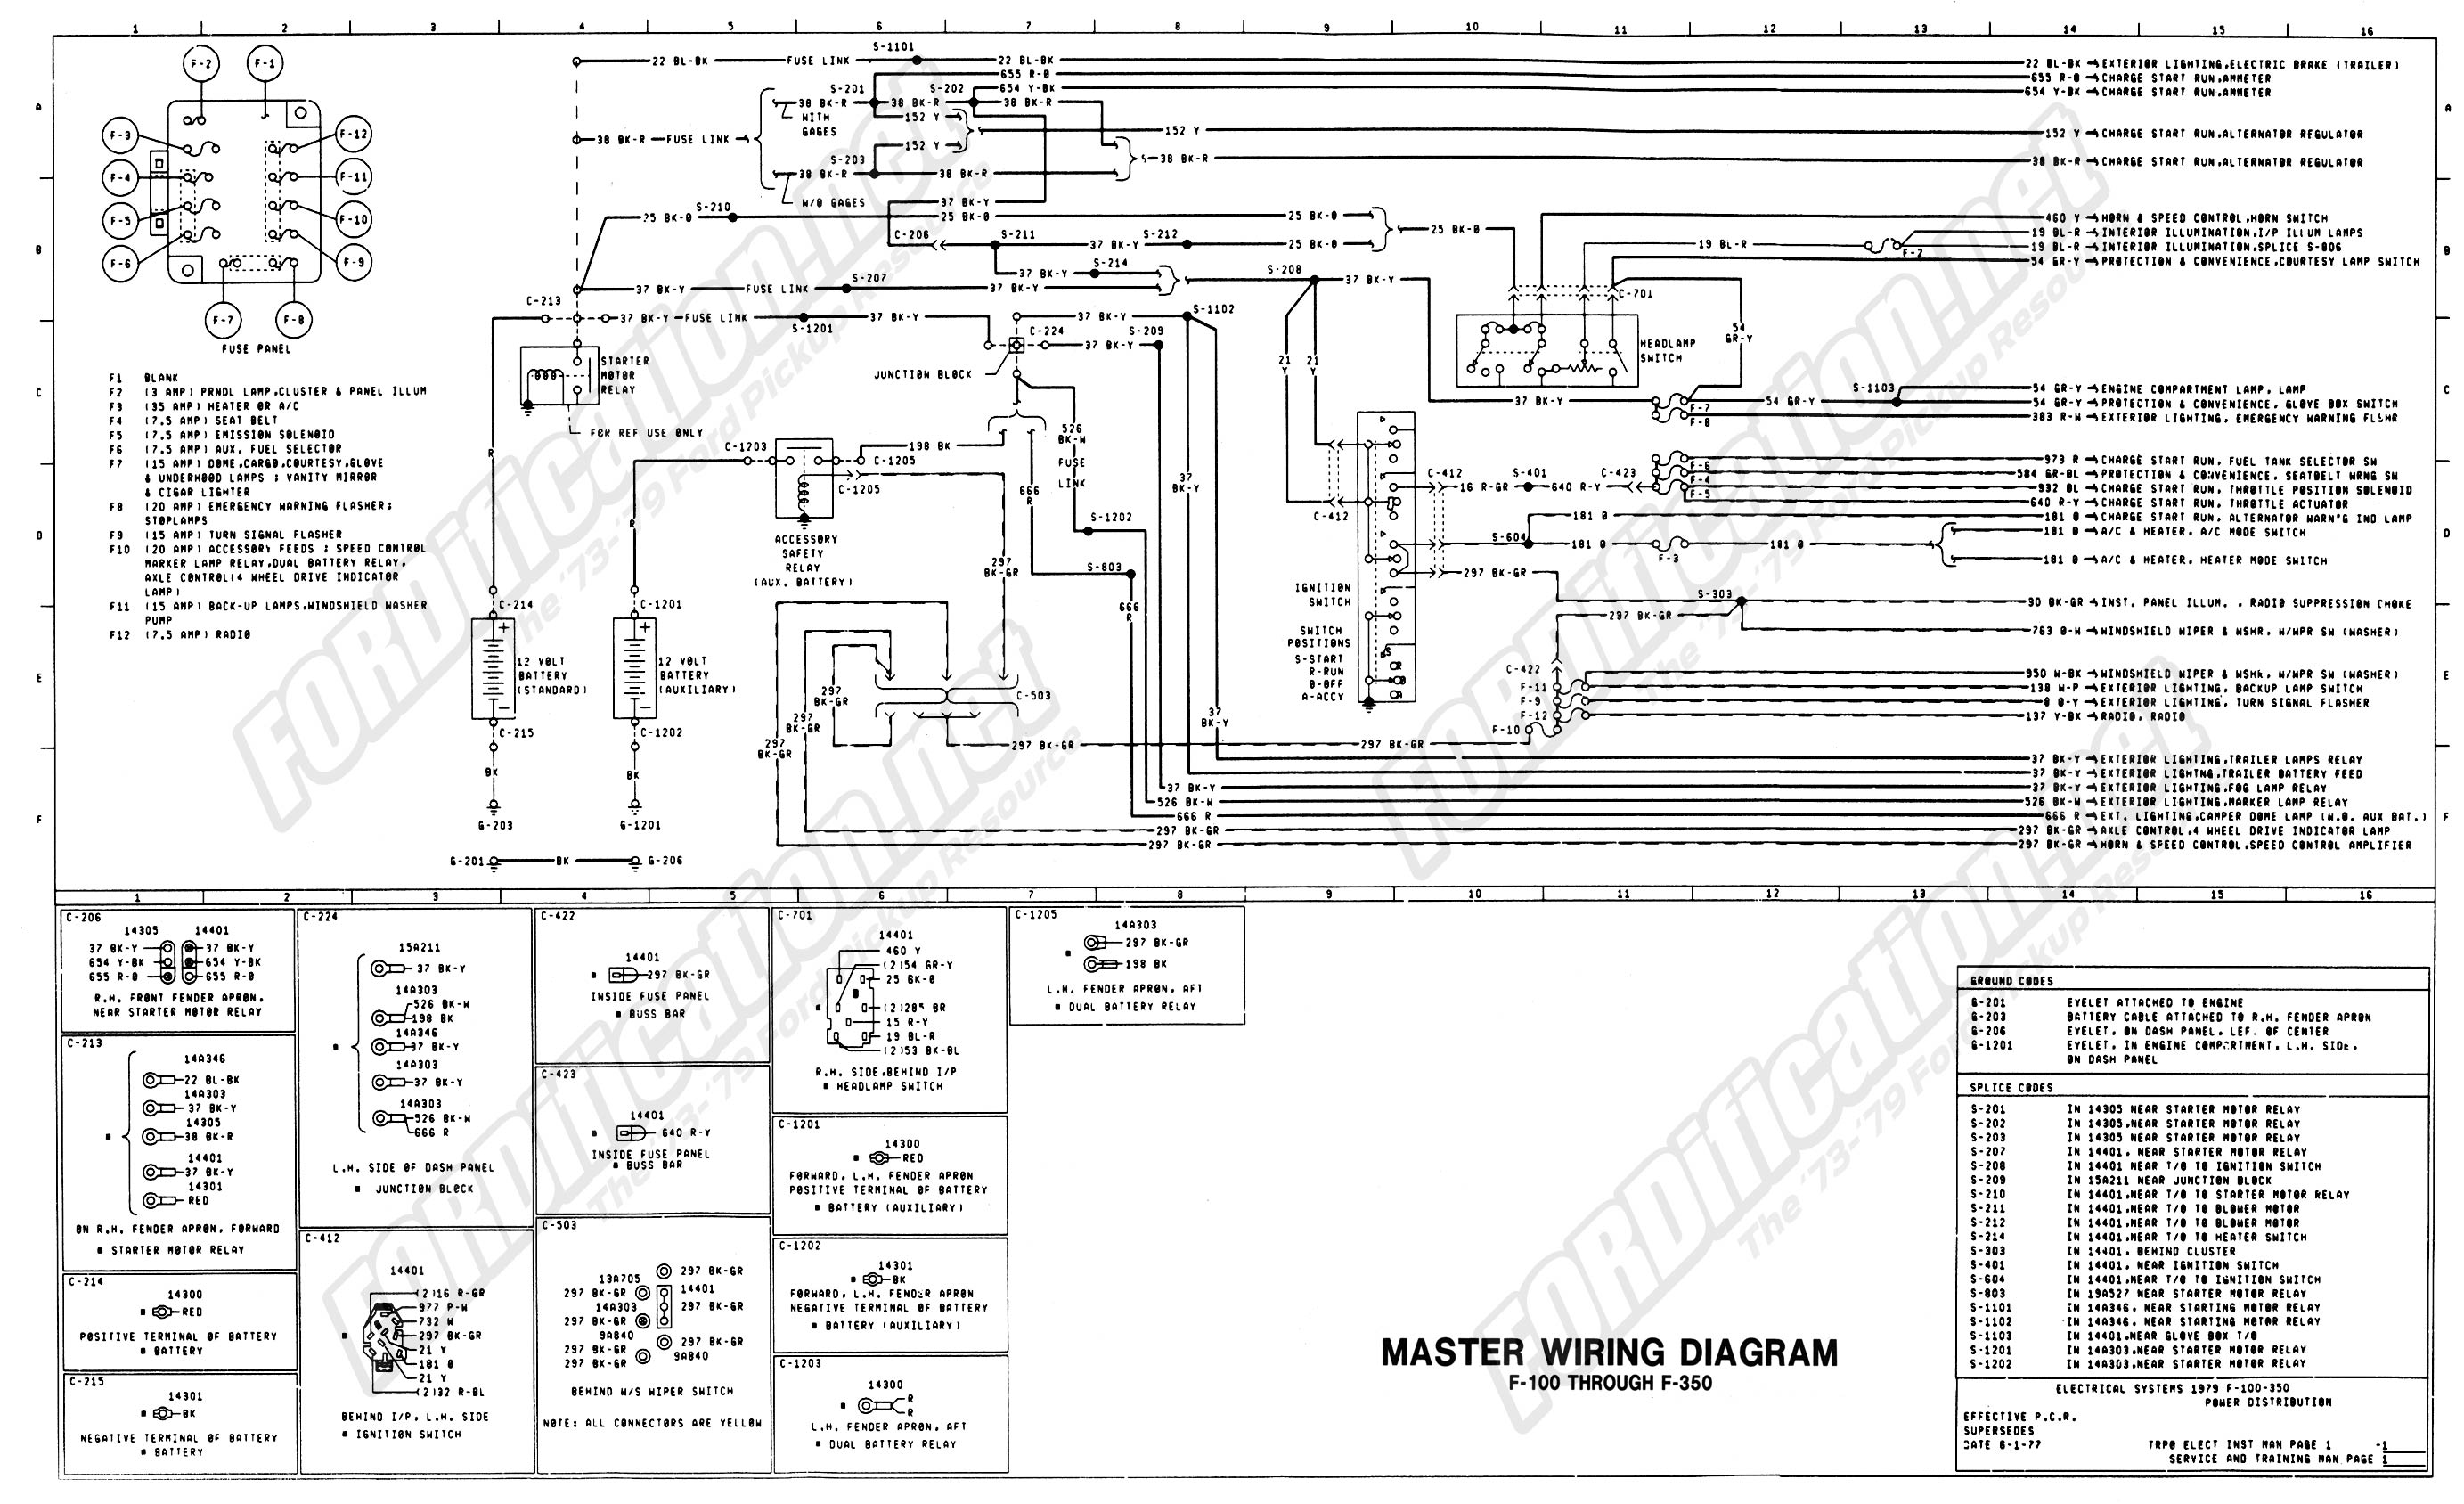 wiring_79master_1of9 wiring diagram for international truck the wiring diagram Ford 4600 Wiring Schematic at n-0.co